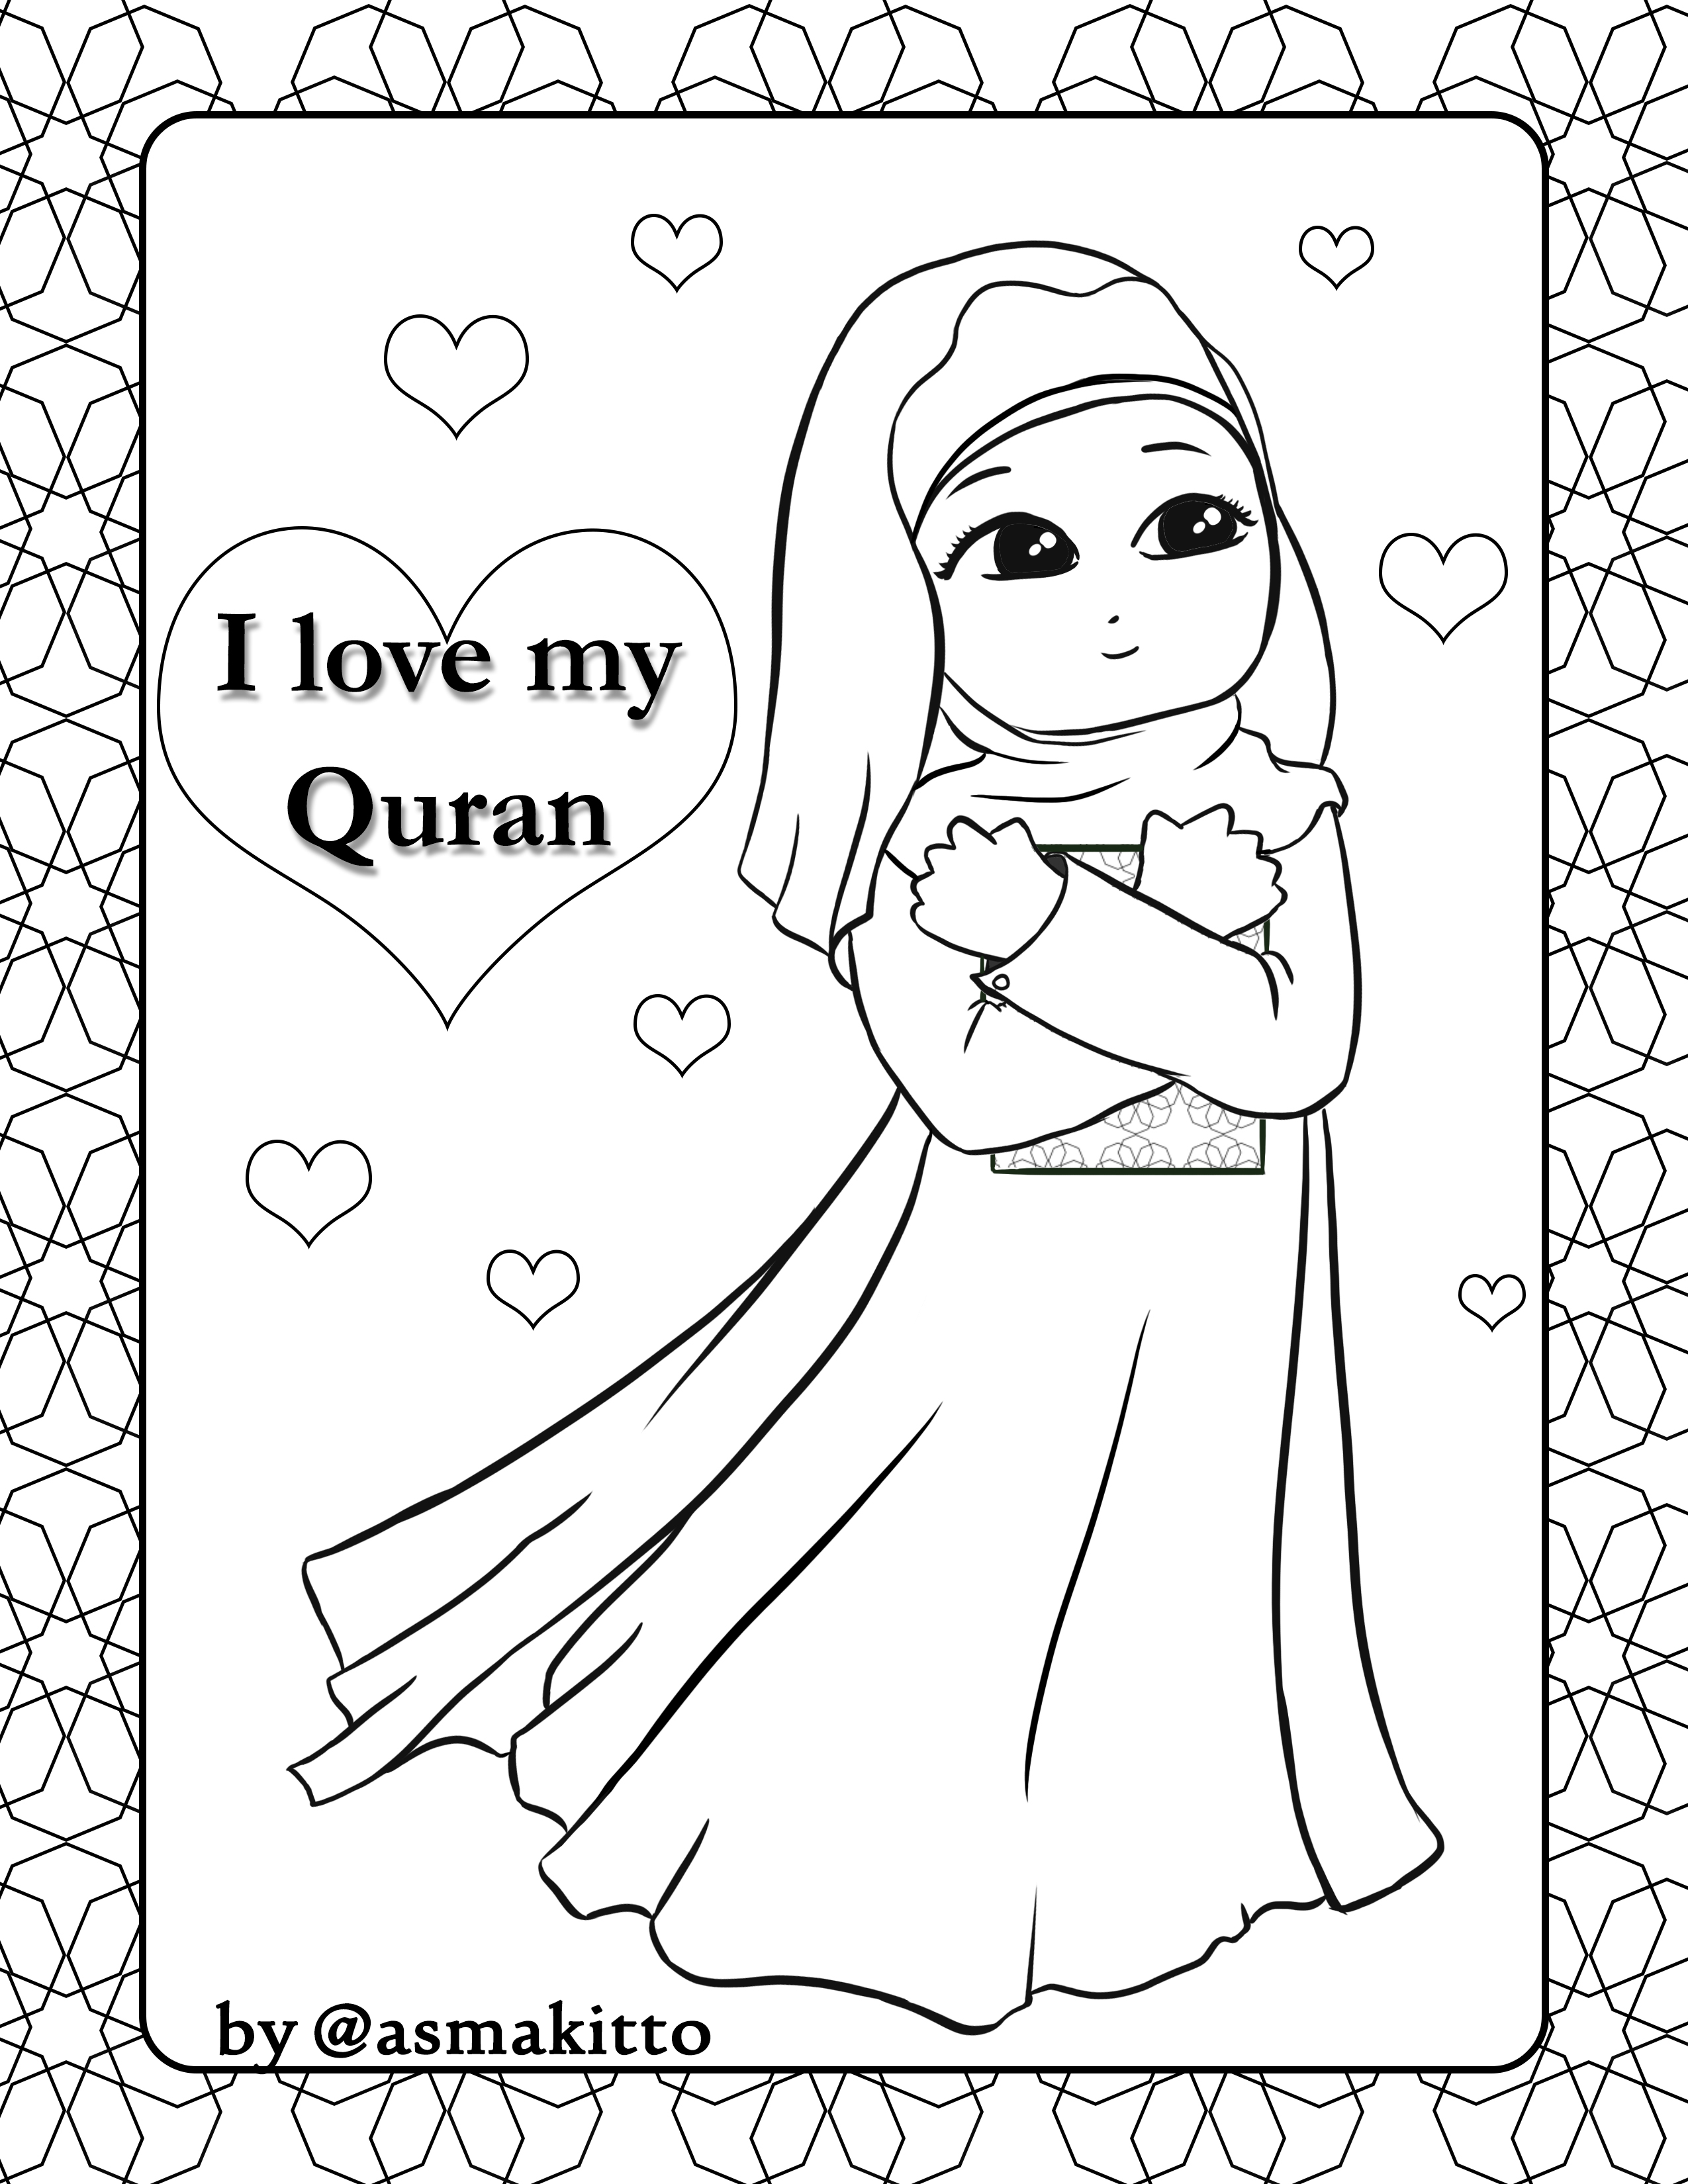 Pin on Coloring Pages for Muslim Kids